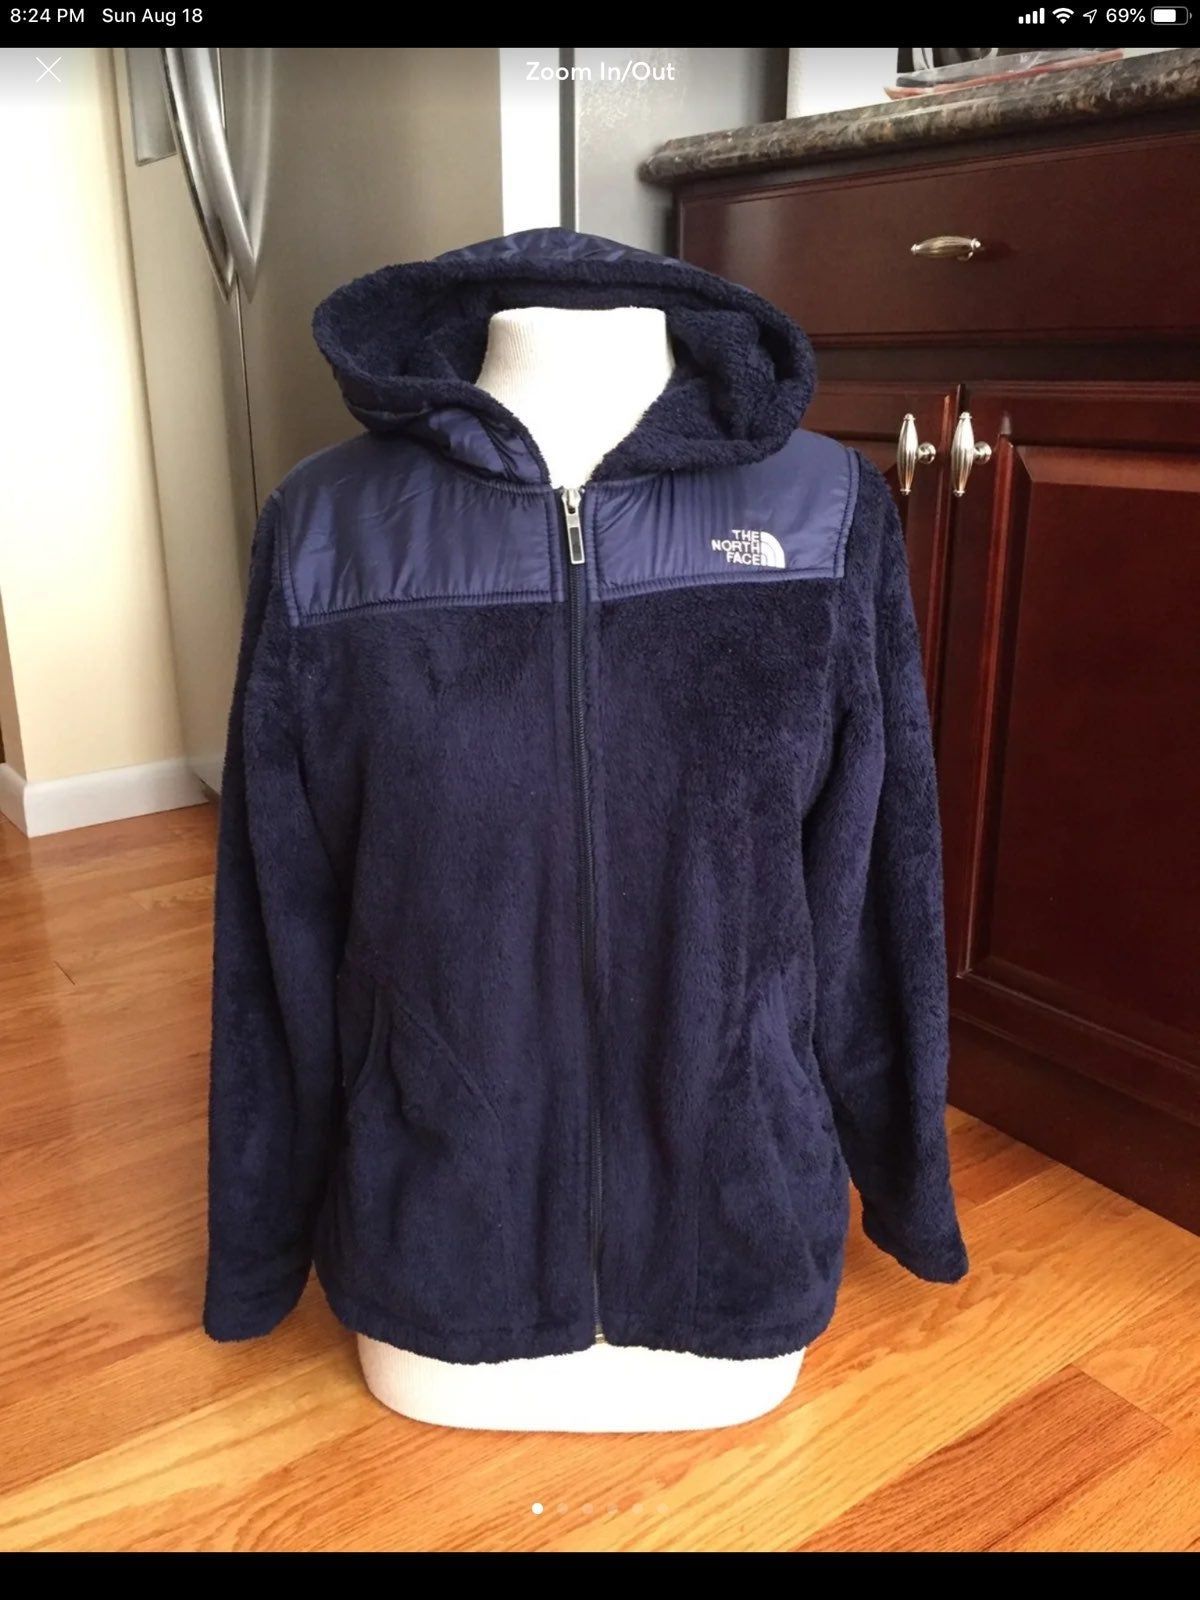 The North Face Women S Fuzzy Jacket M On Mercari Jackets Fuzzy Jacket North Face Fleece Jacket [ 1600 x 1200 Pixel ]